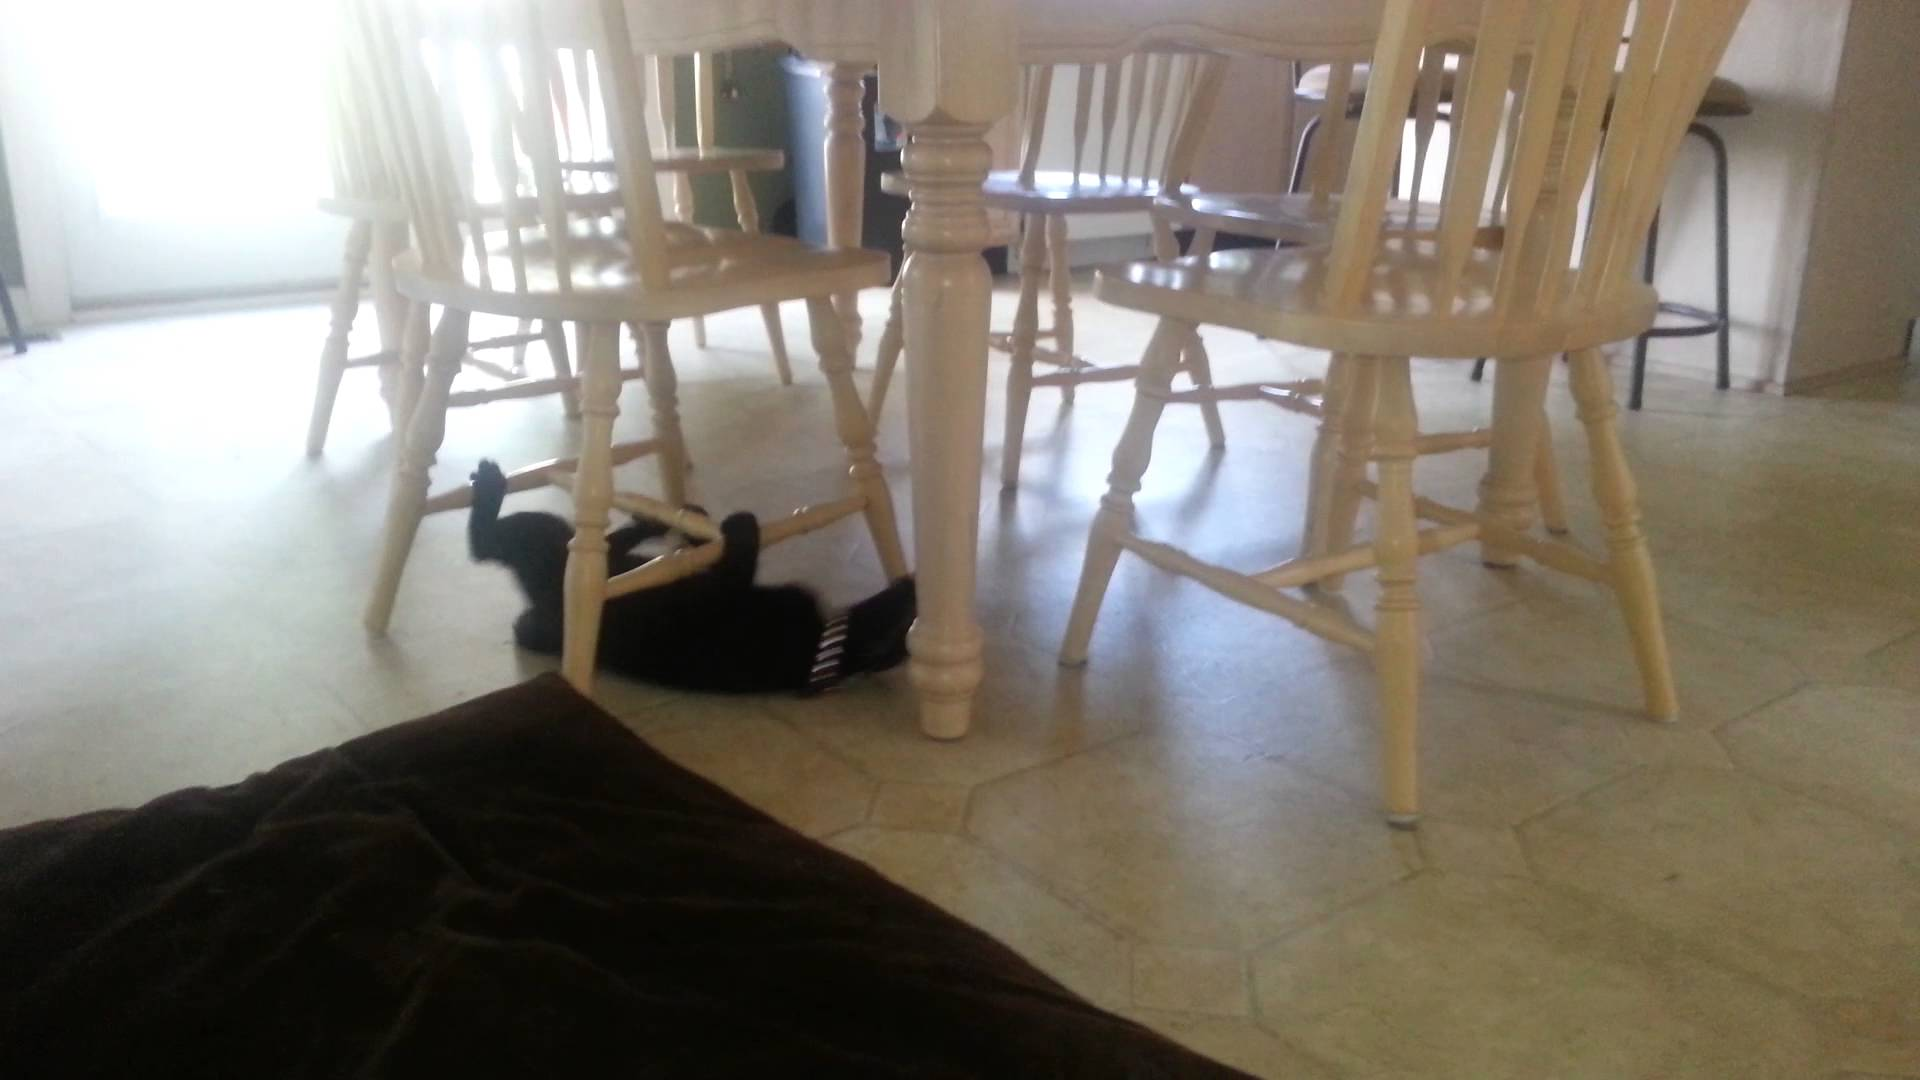 Cat drags itself around underneath table